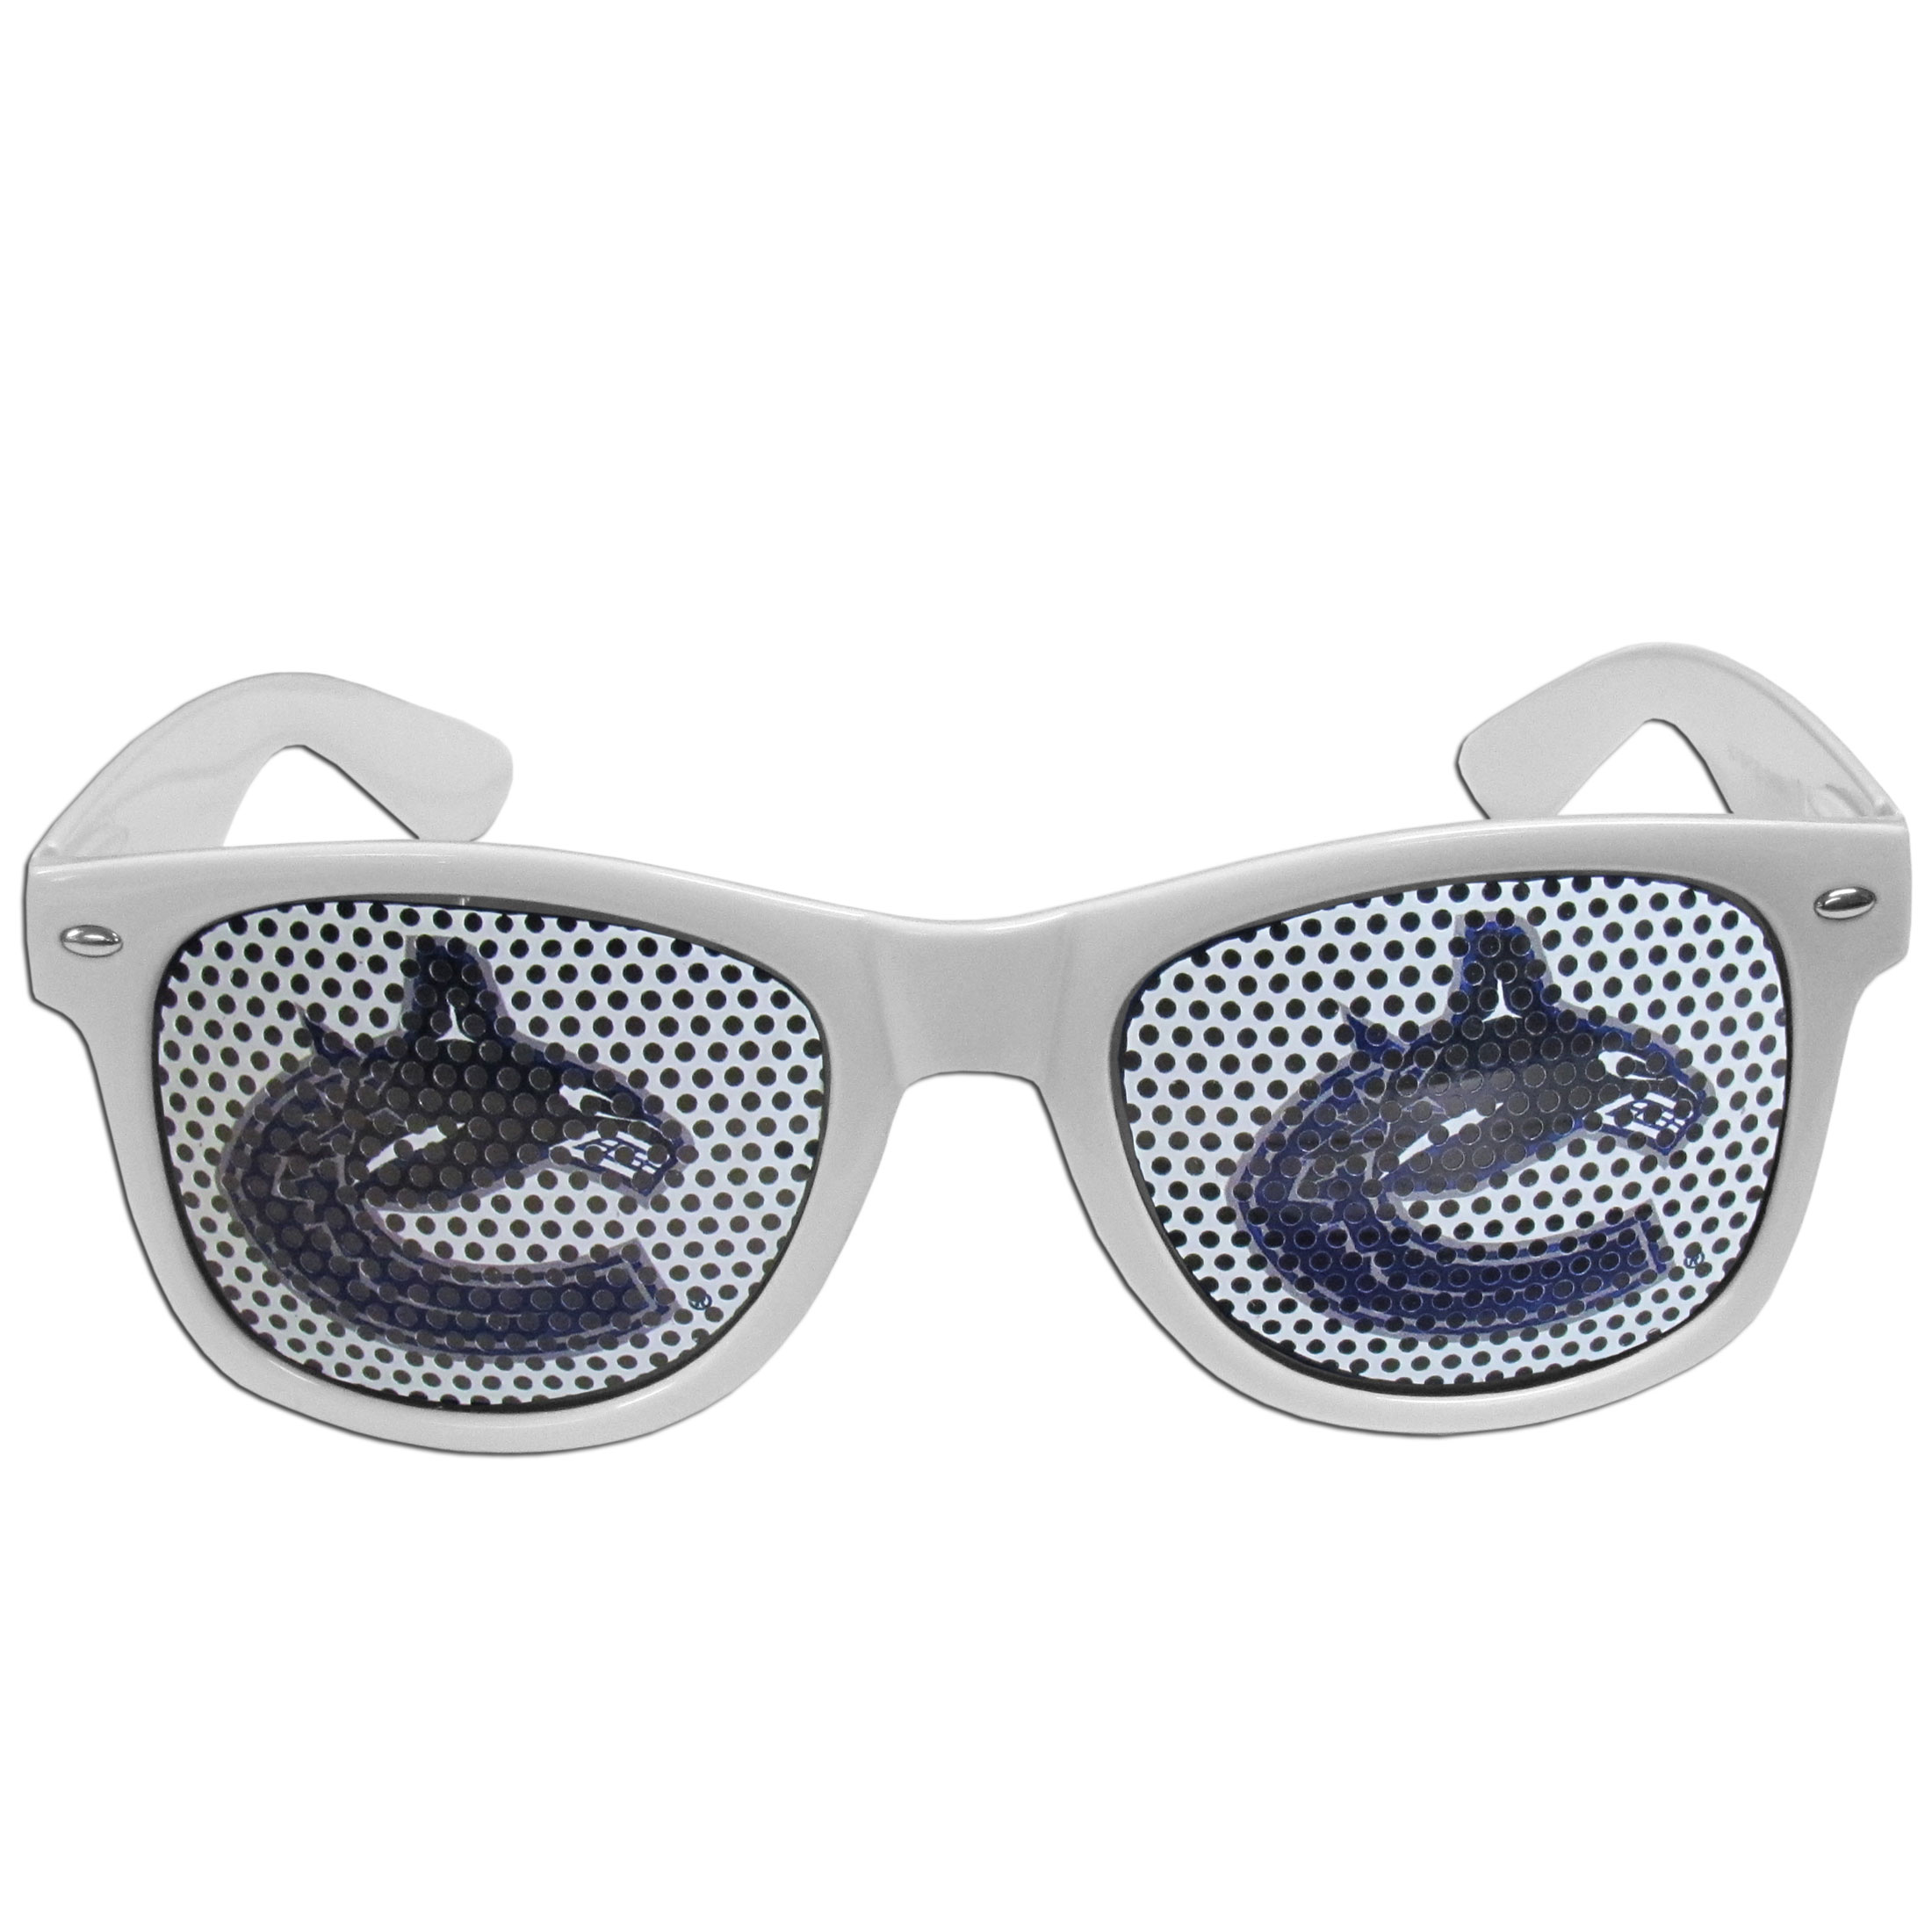 Vancouver Canucks Game Day Shades - Officially licensed Vancouver Canucks game day shades are the perfect accessory for the devoted Vancouver Canucks fan! The Vancouver Canucks game day shades have durable polycarbonate frames with flex hinges for comfort and damage resistance. The lenses feature brightly colored Vancouver Canucks game day shades clings that are perforated for visibility.